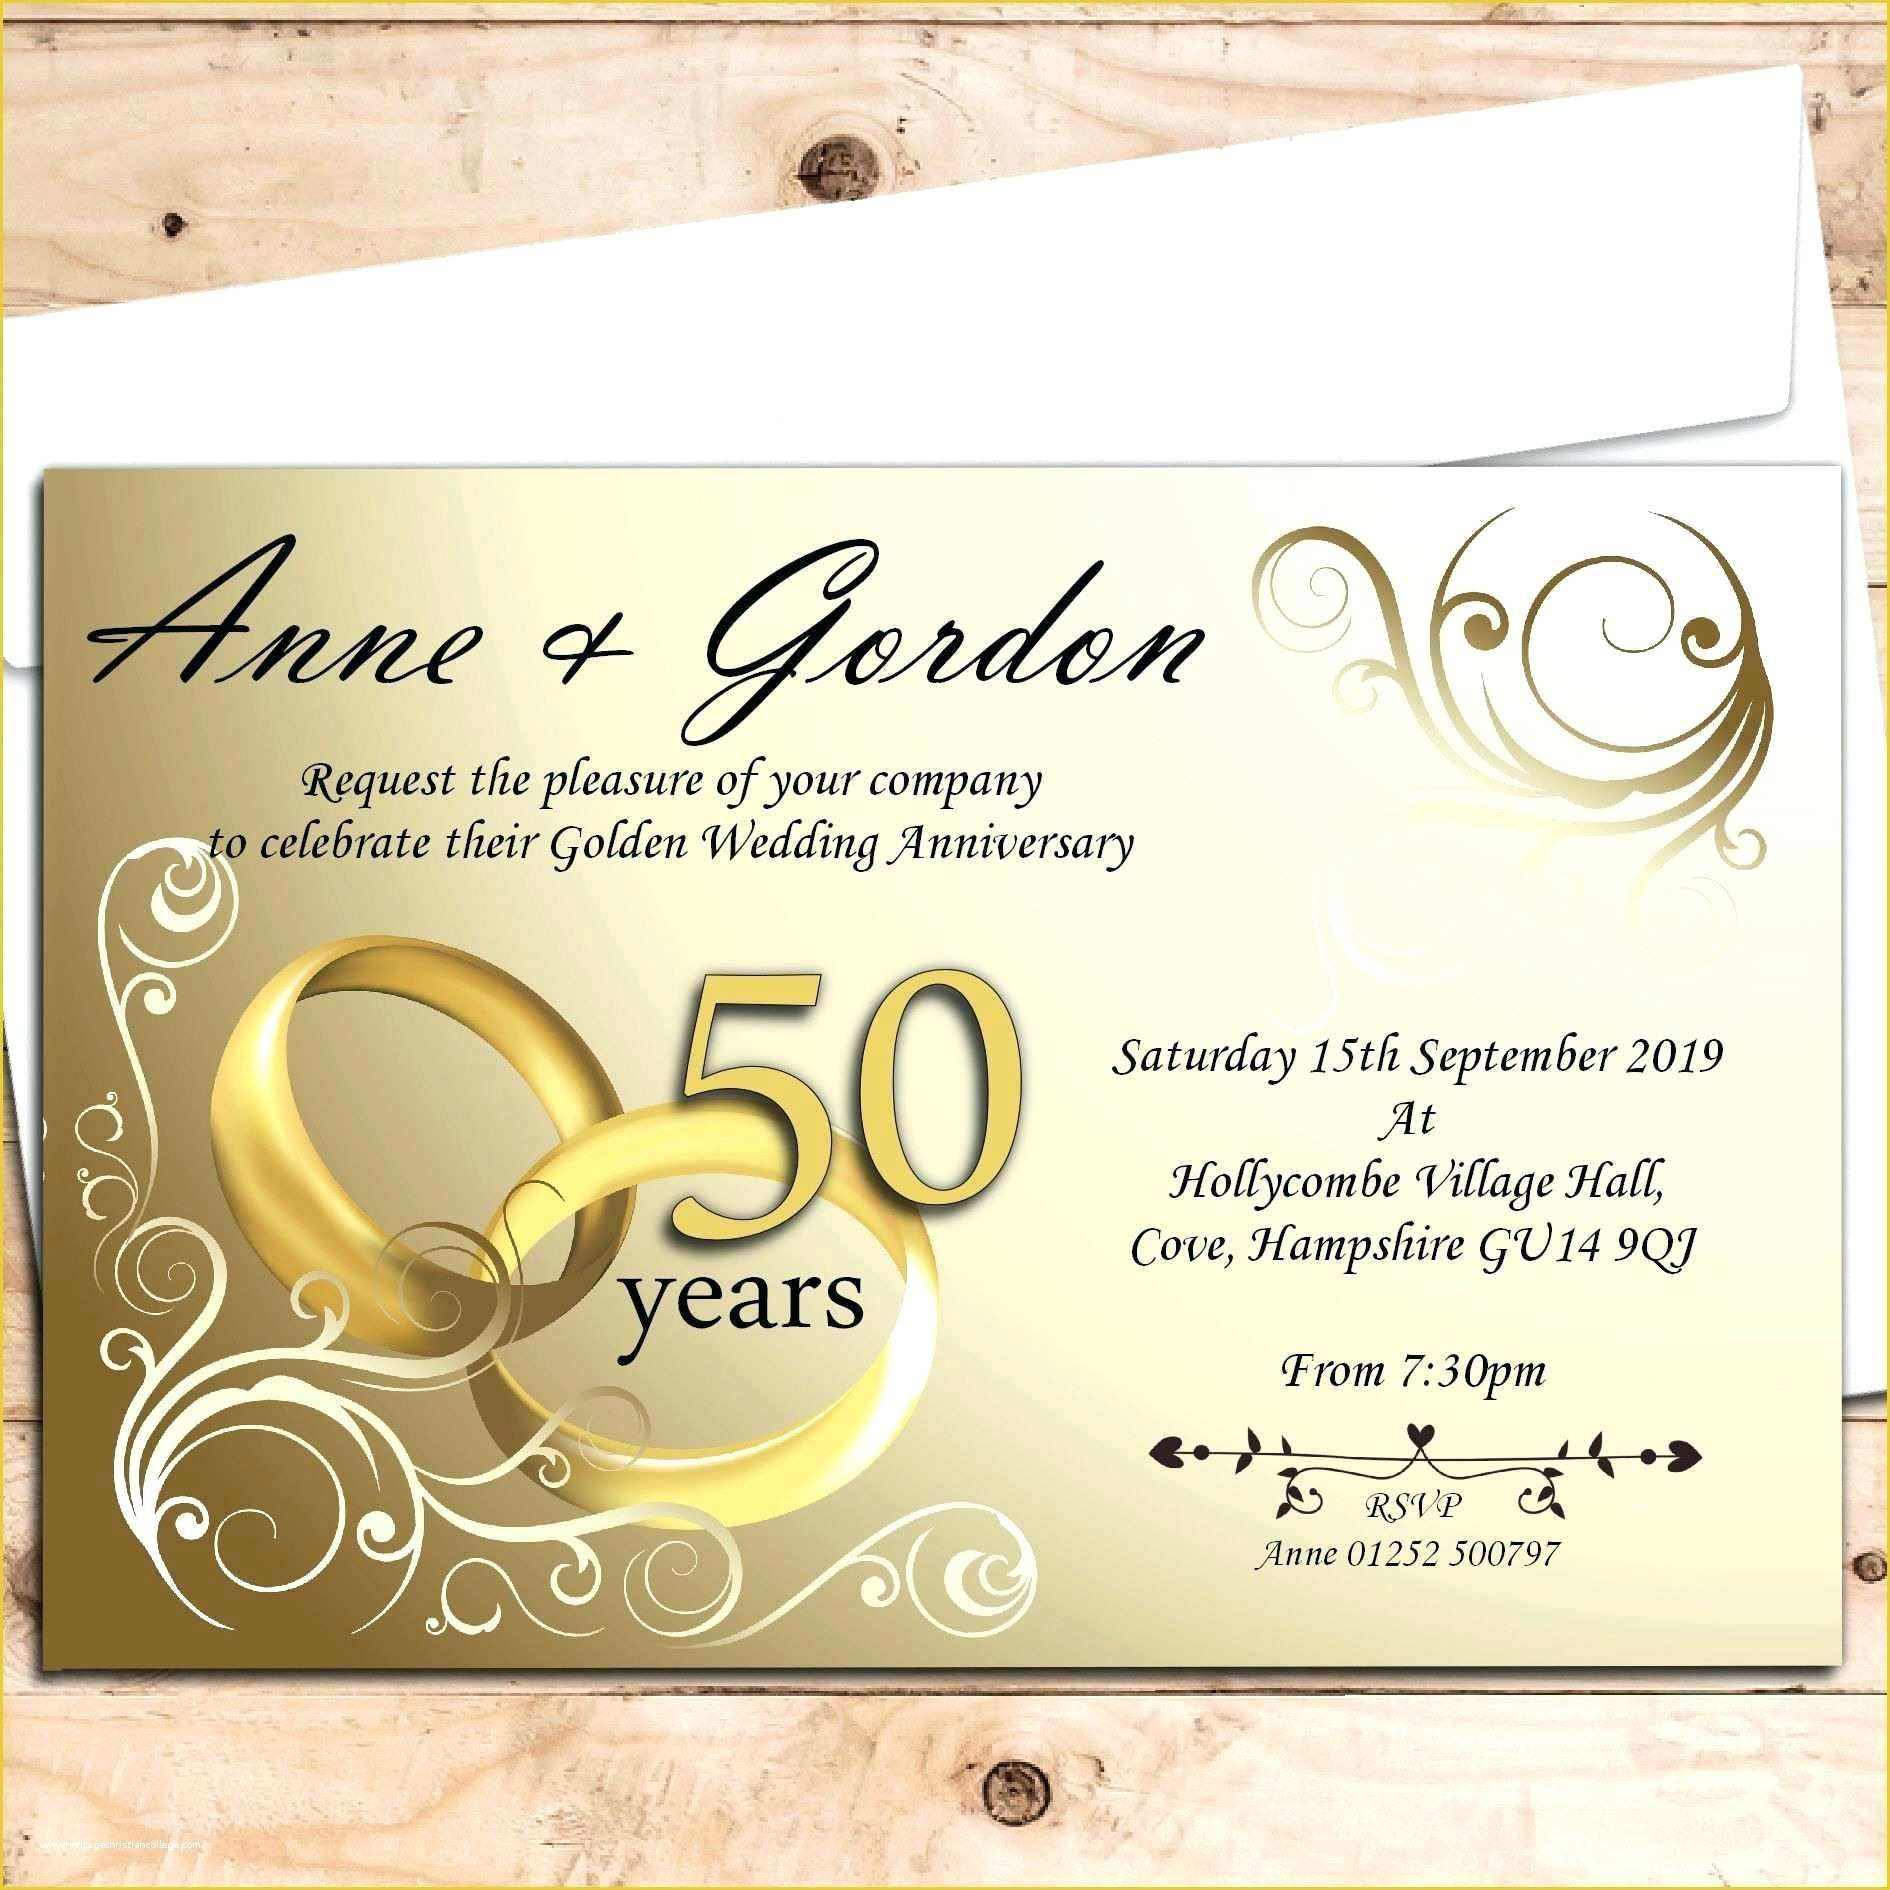 007 Beautiful Free 50th Anniversary Invitation Template For Word Highest Quality Full